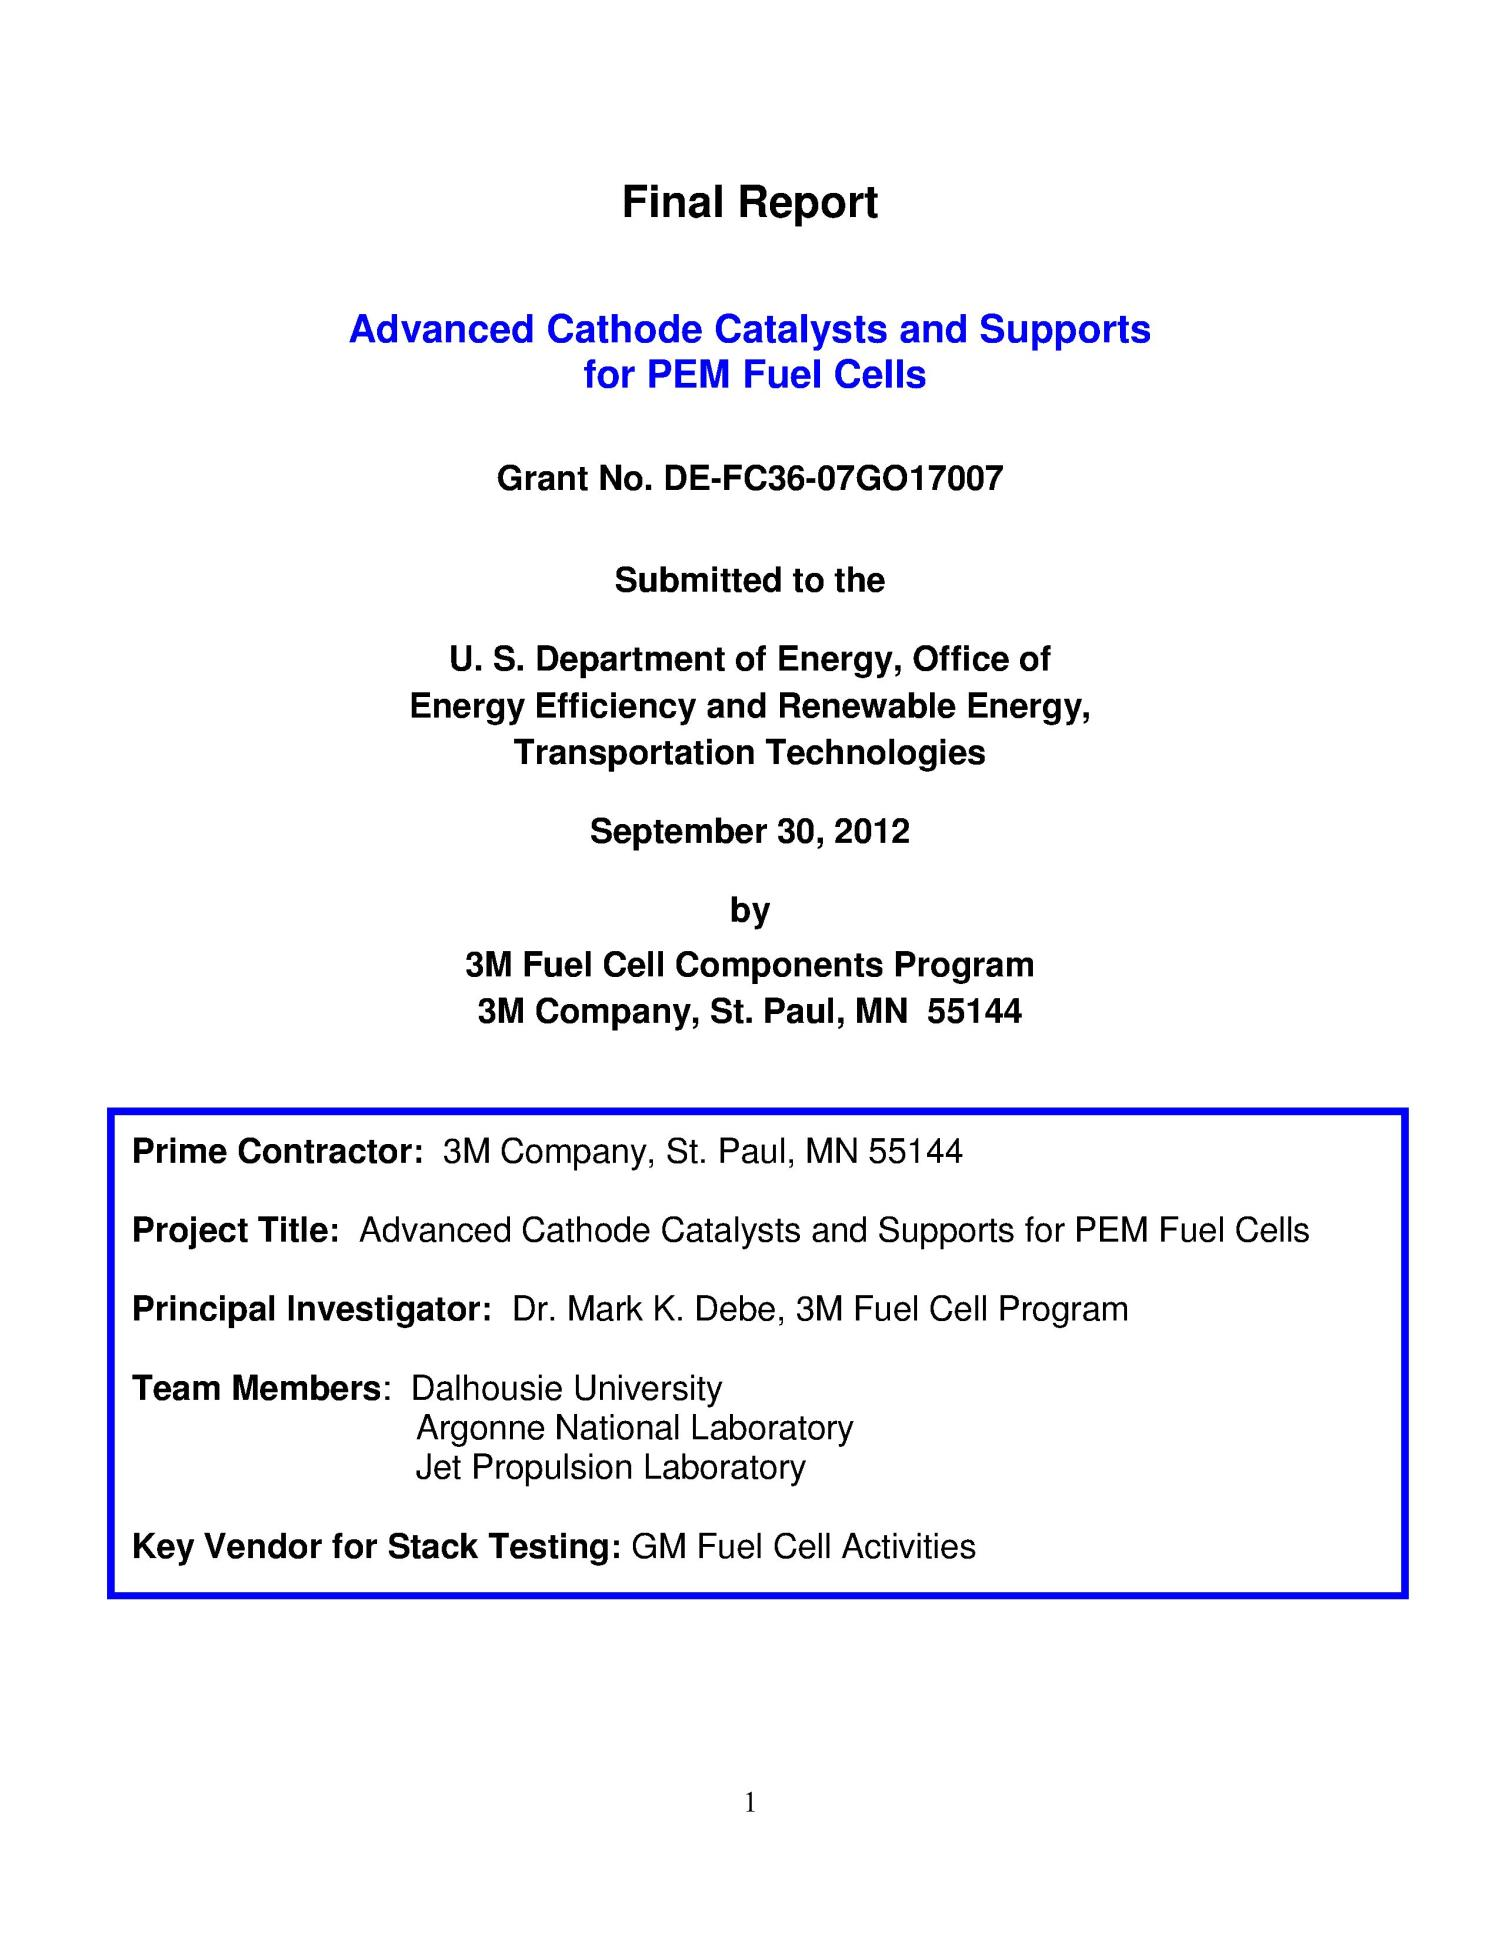 Final Report - Advanced Cathode Catalysts and Supports for